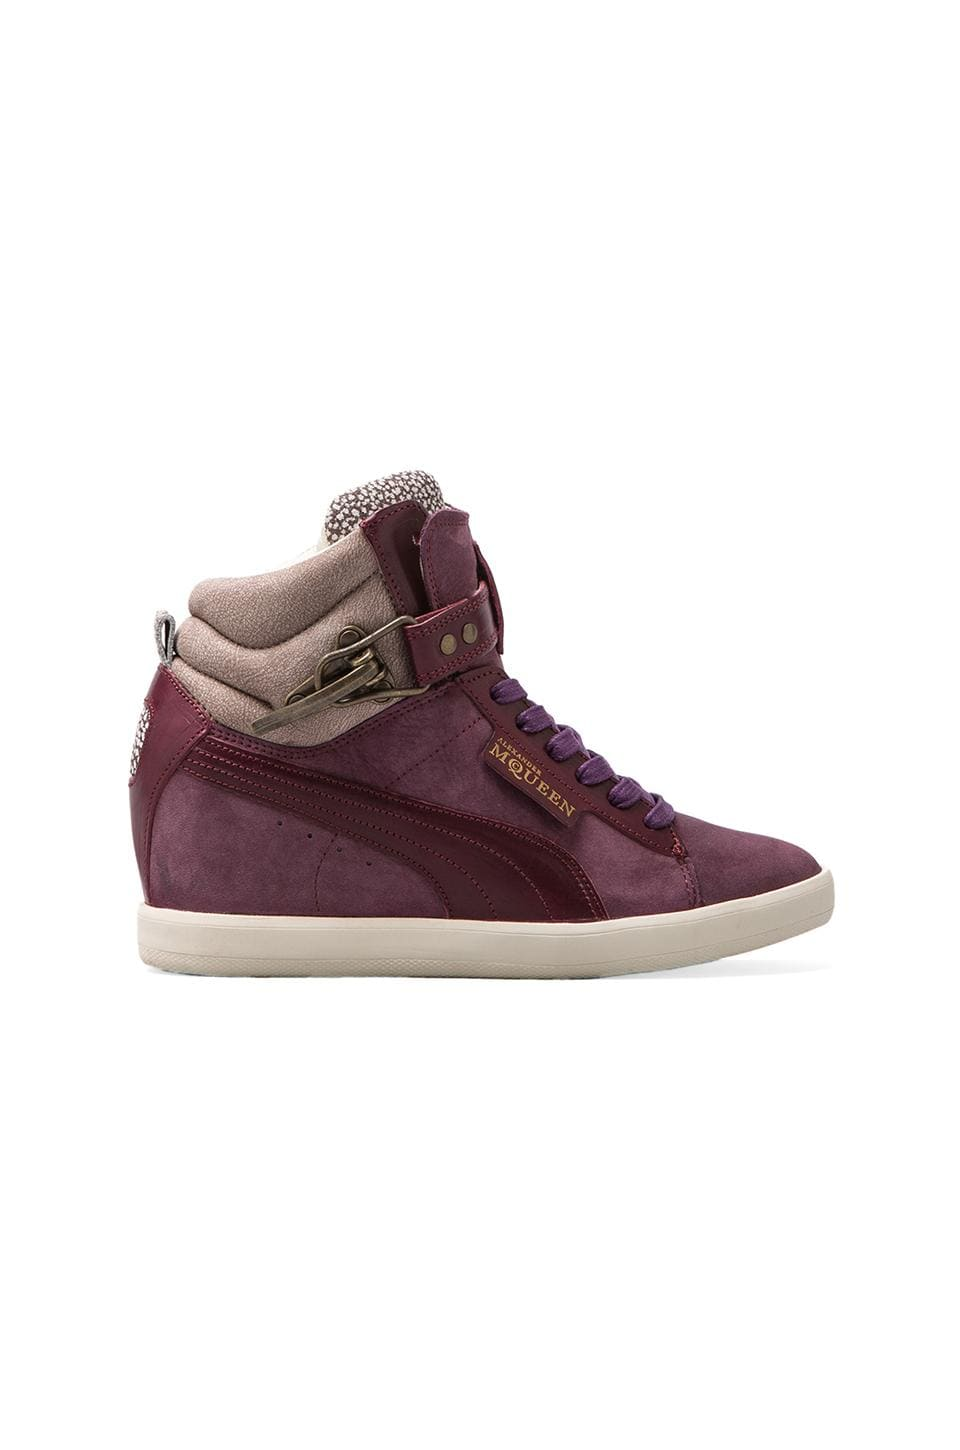 Alexander McQueen Puma Joustesse Mid Wedge Sneaker in Dark Grey